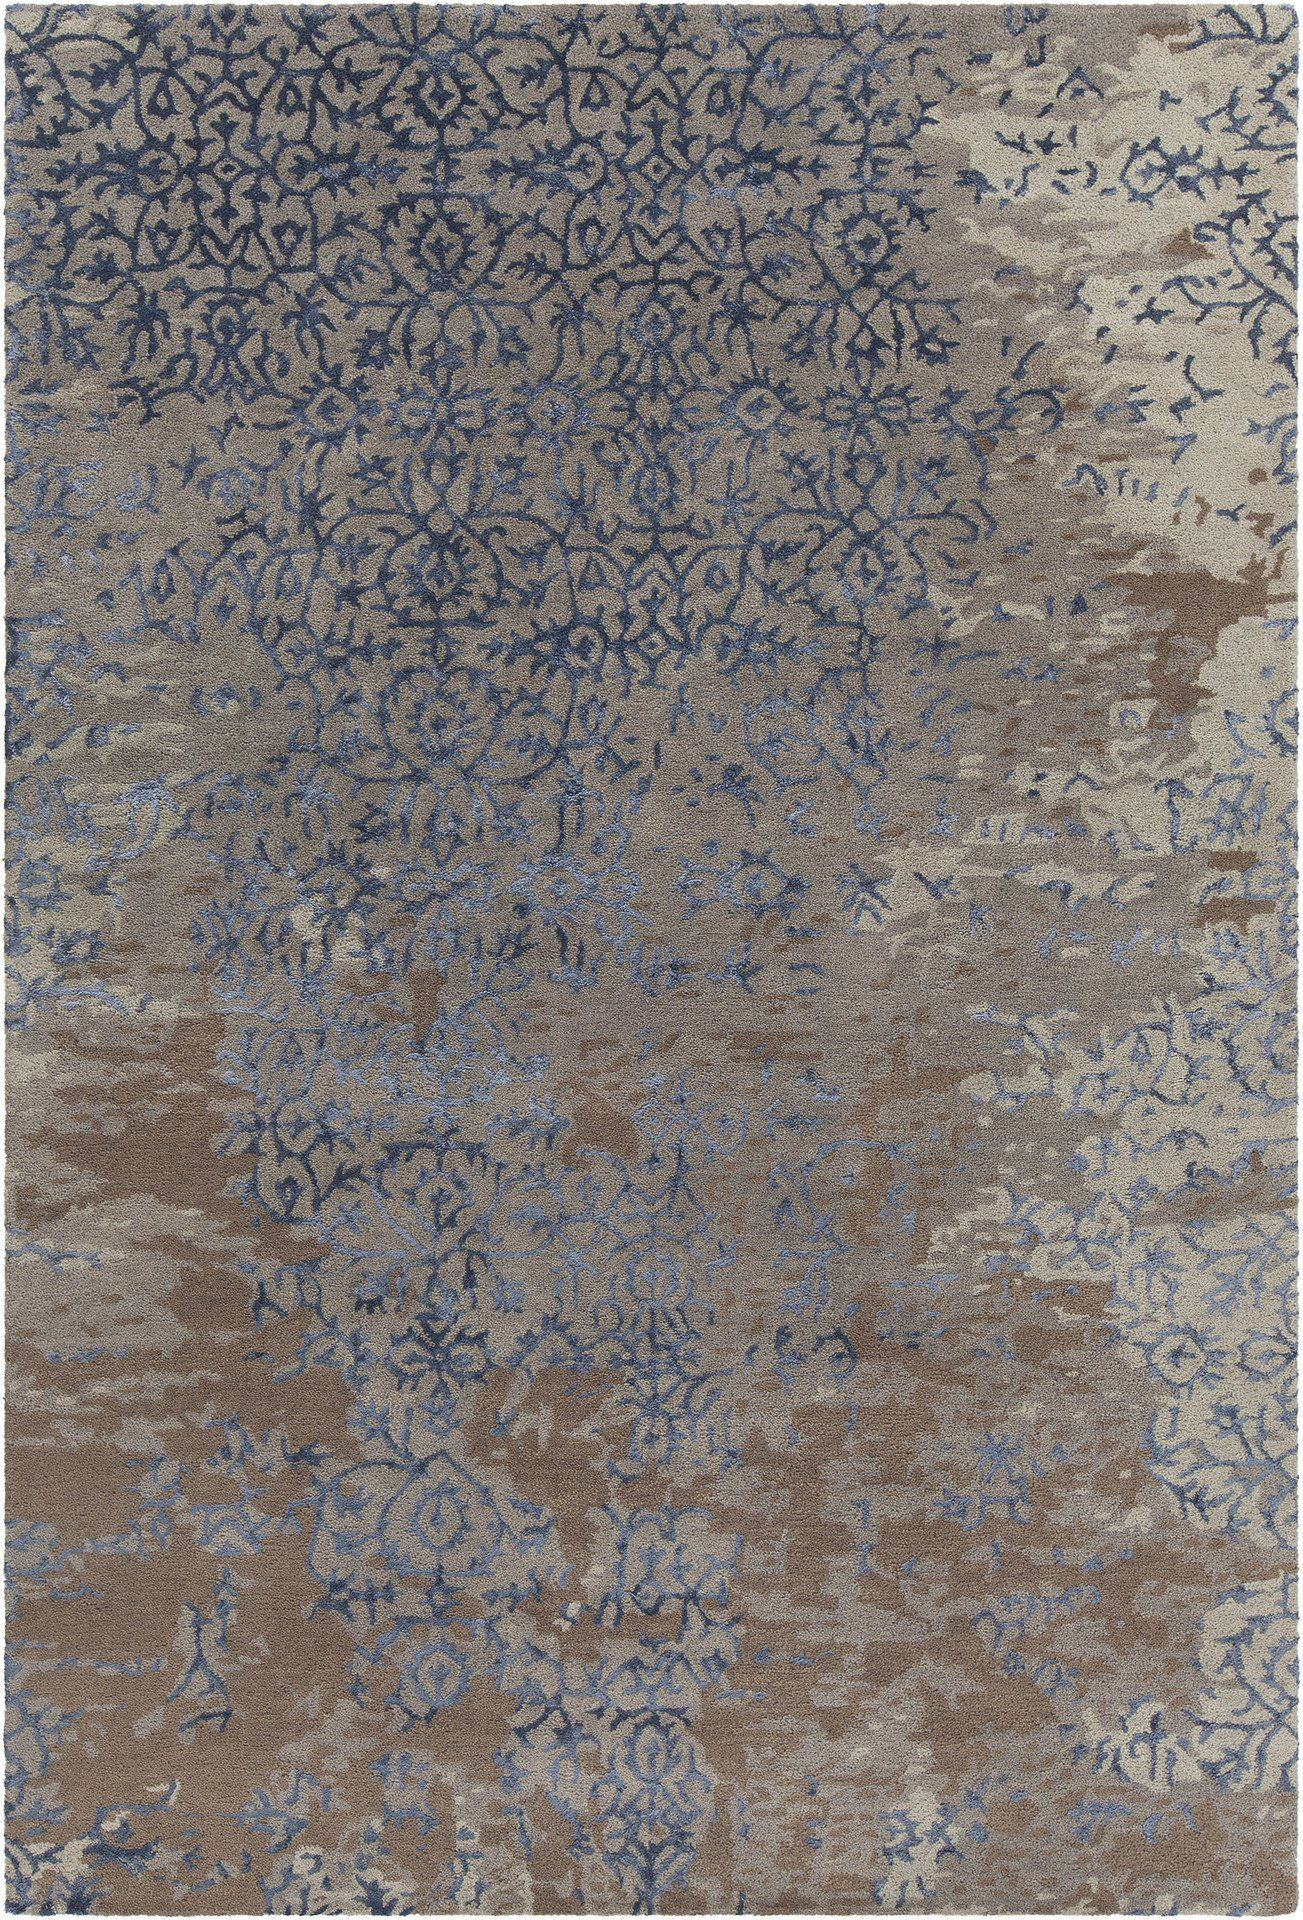 Rupec Collection Hand Tufted Area Rug In Grey Blue Brown Design